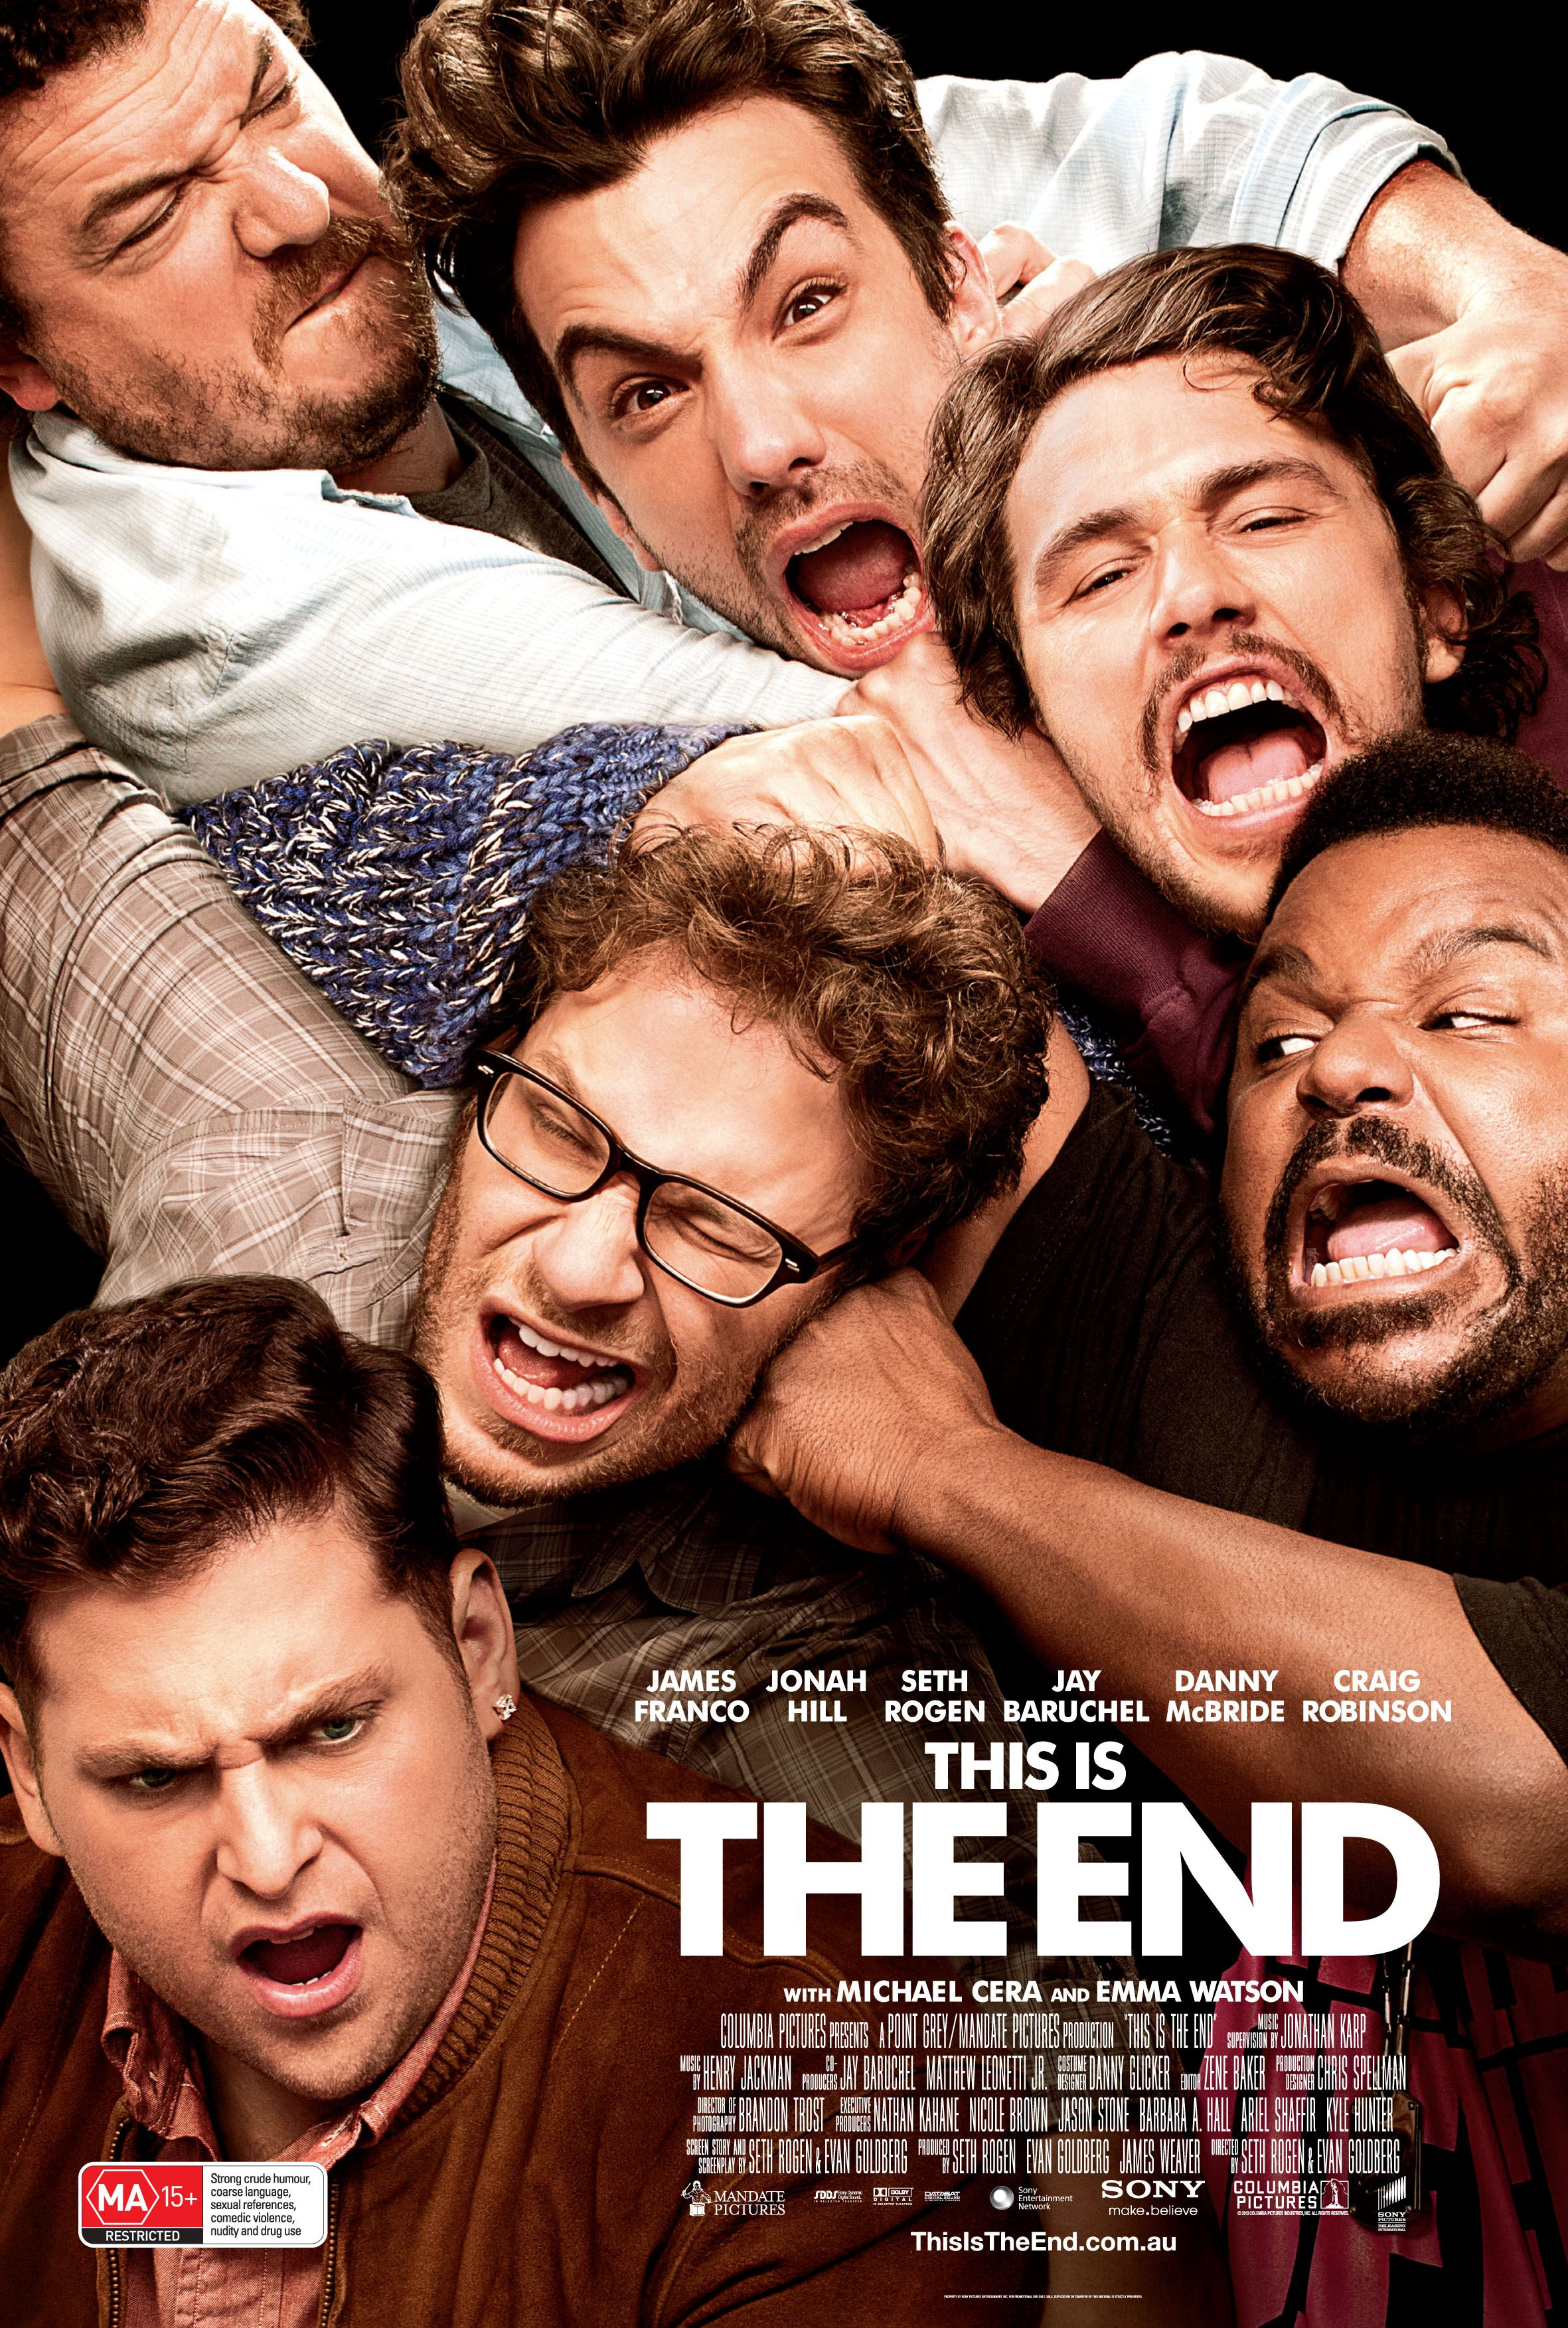 Https Www Facebook Com Events 462863013799191 The End Movie